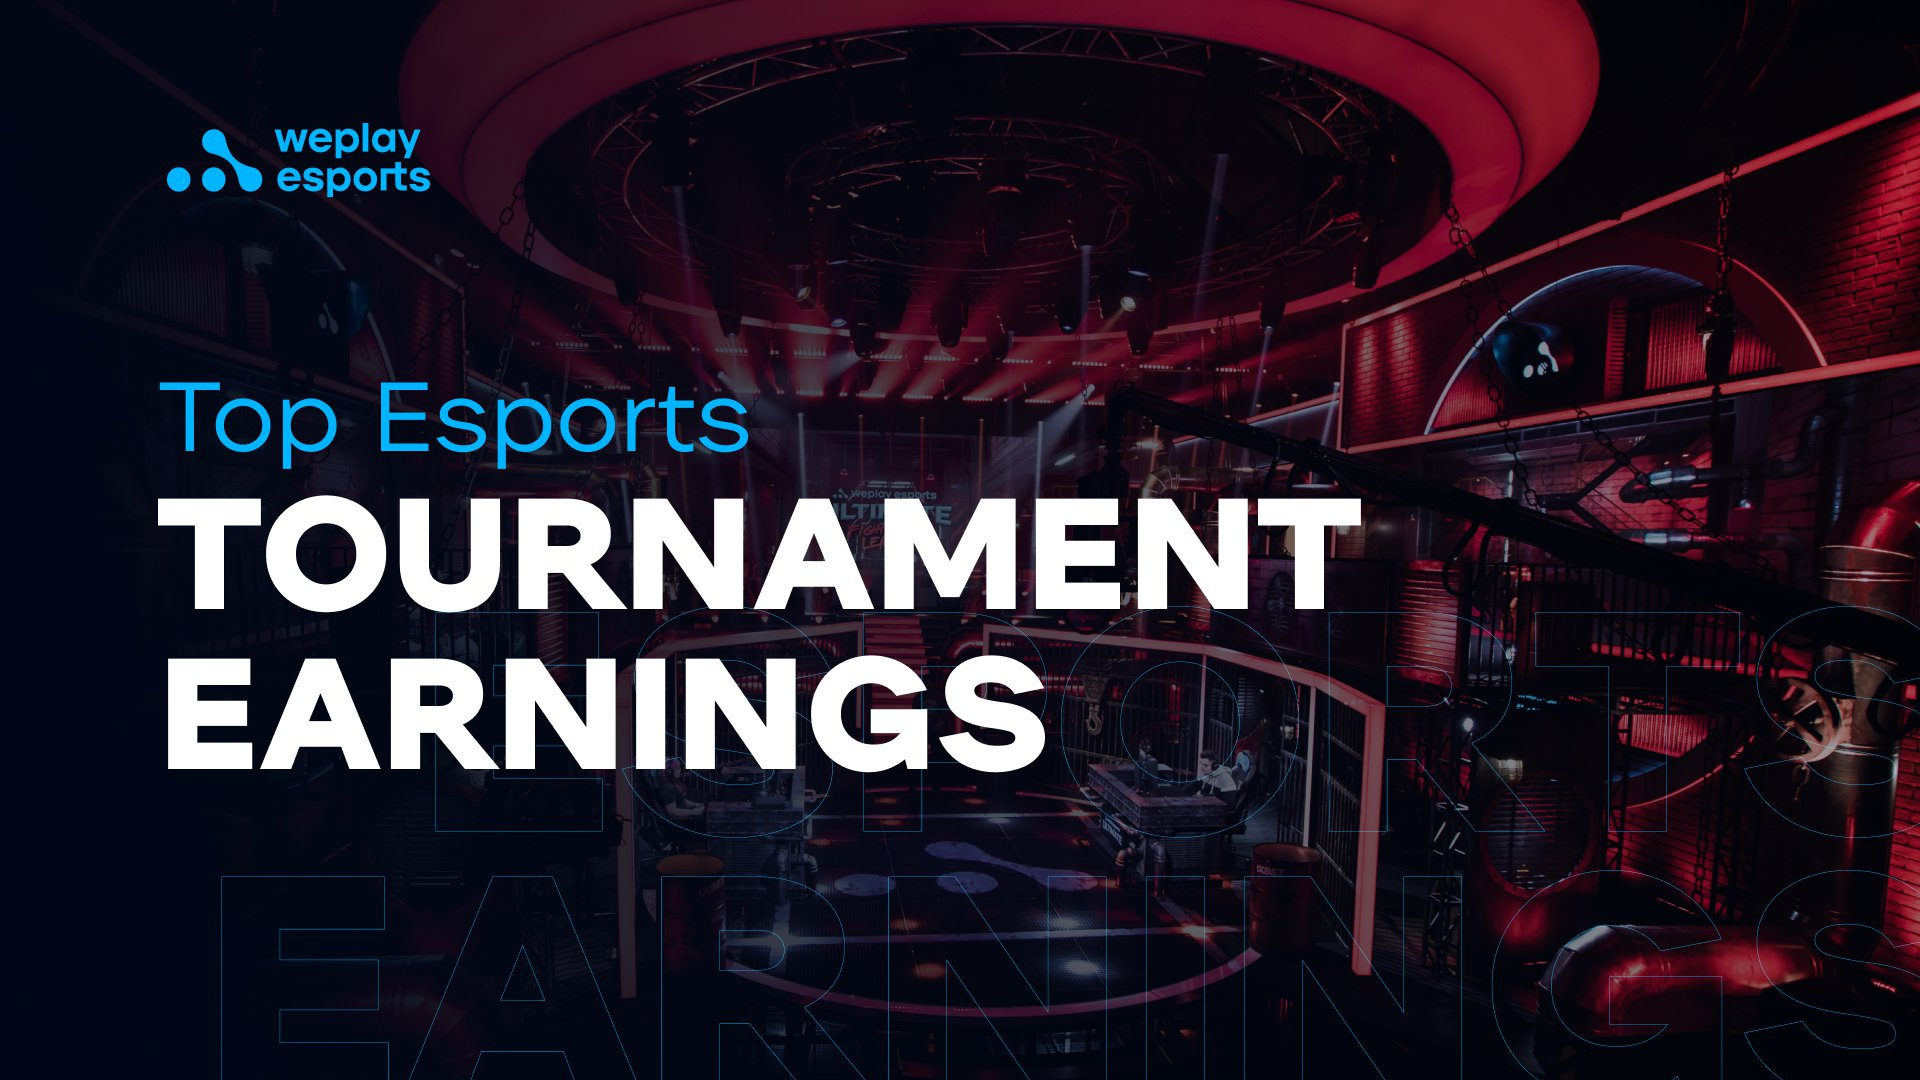 Top Esports Tournament Earnings